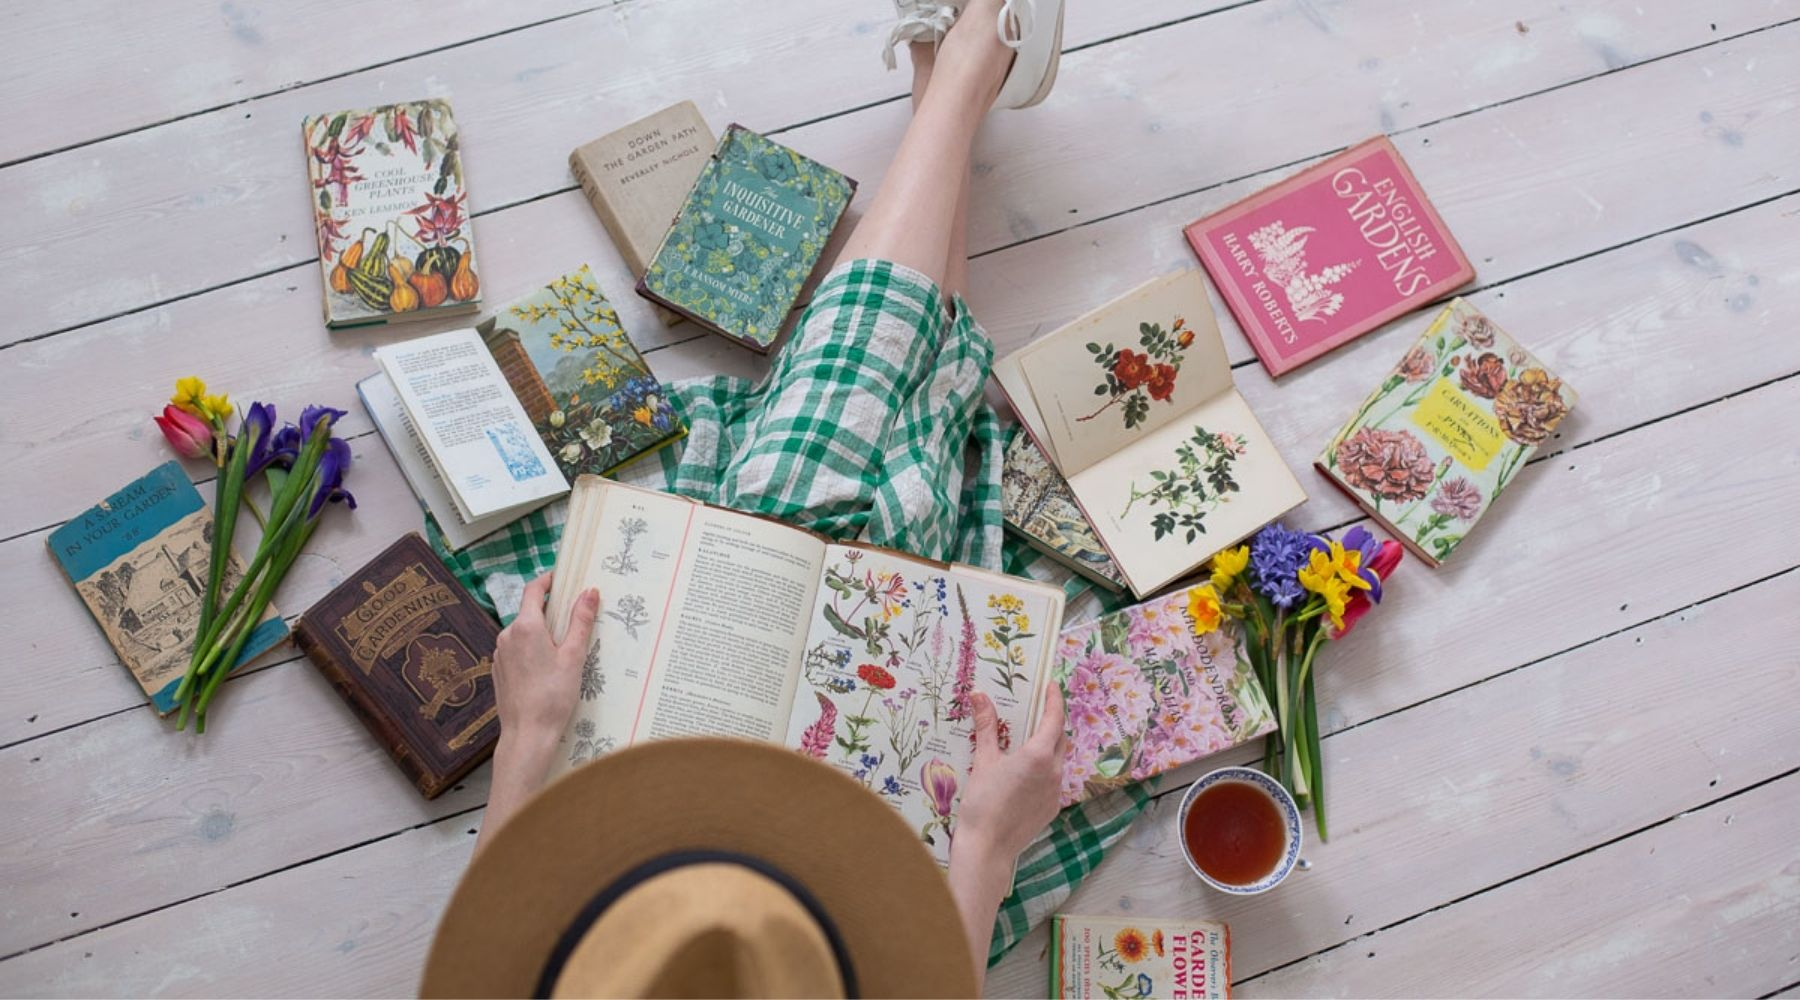 Books to read outside this spring